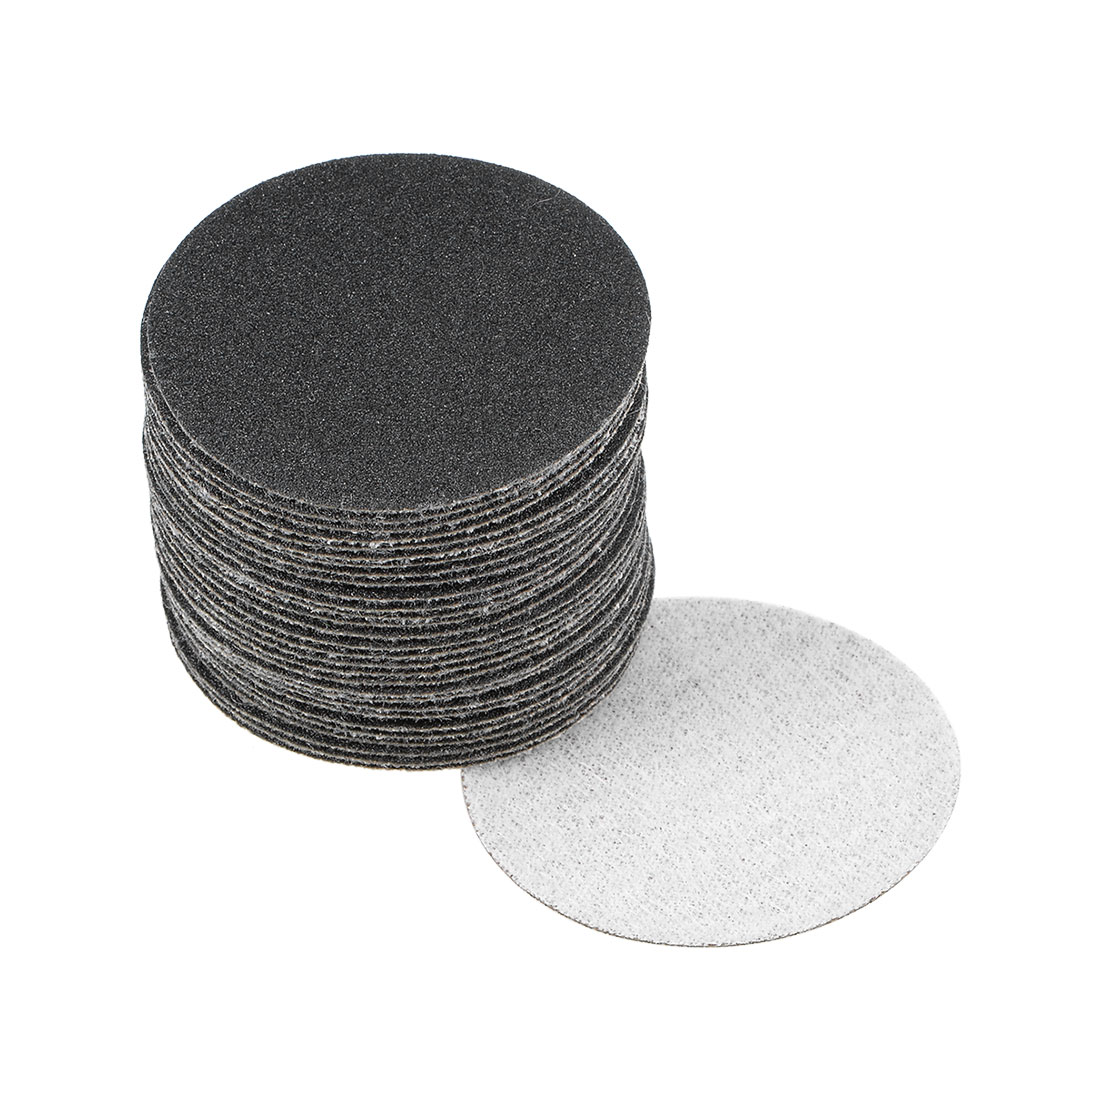 2 inch Wet Dry Discs 150 Grit Hook and Loop Sanding Disc Silicon Carbide 30pcs